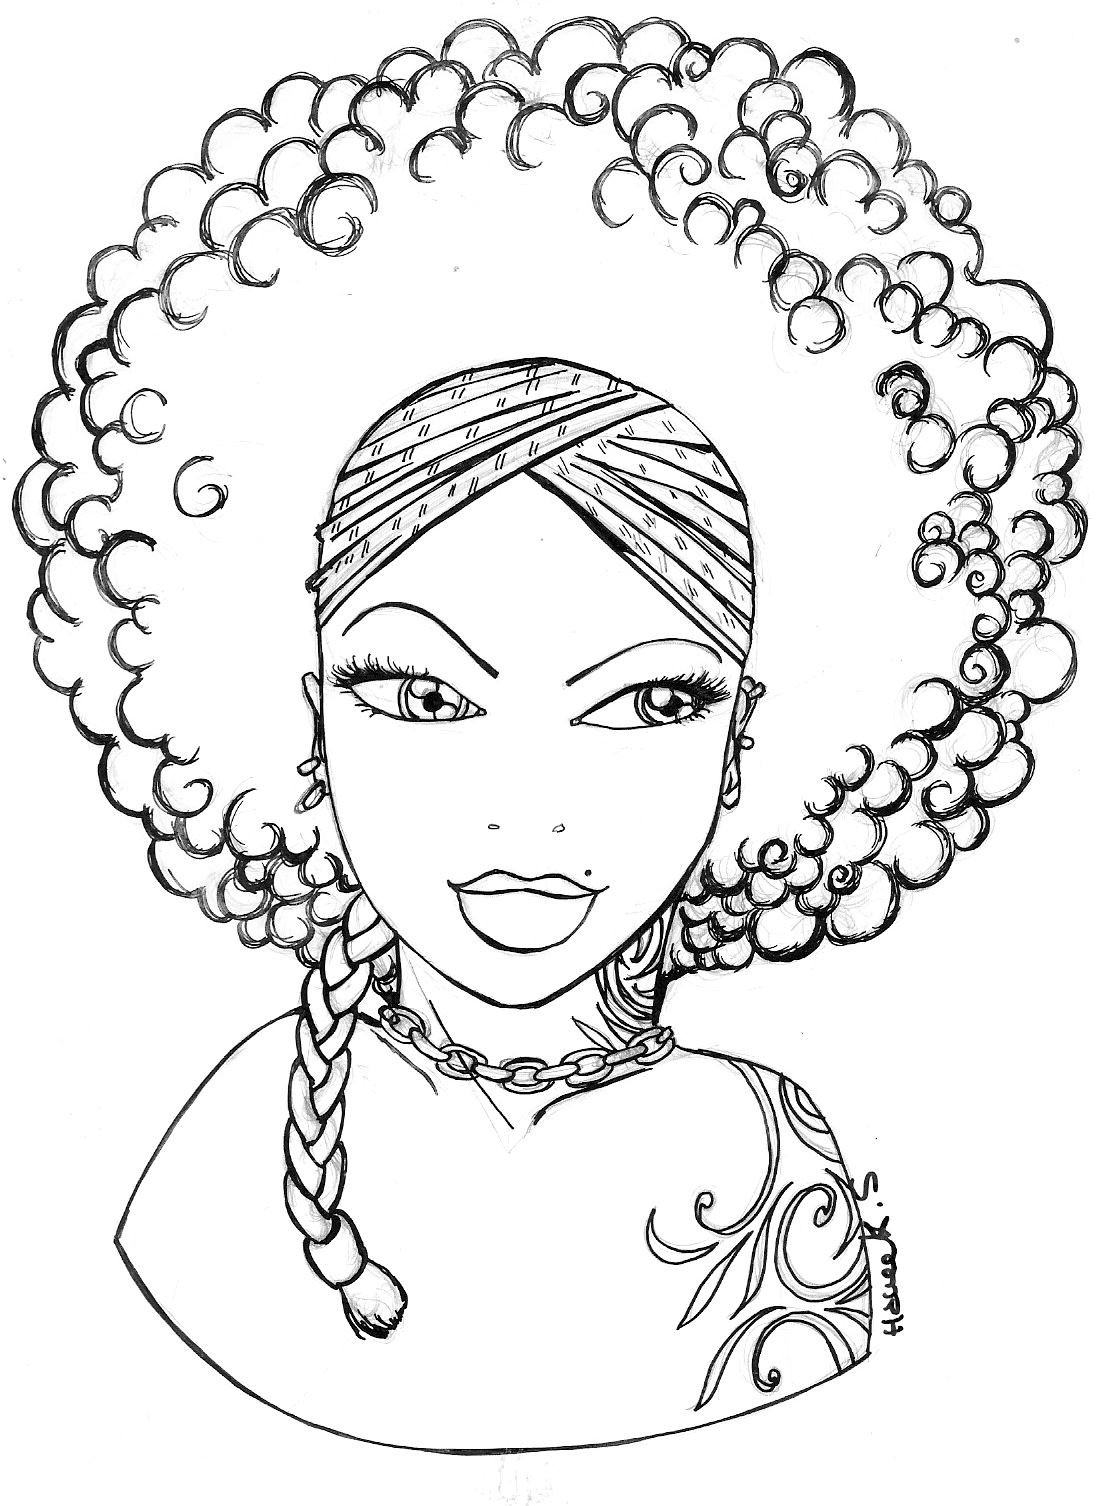 coloring pages of african women adult coloring page african girl portrait colouring sheet coloring pages women of african